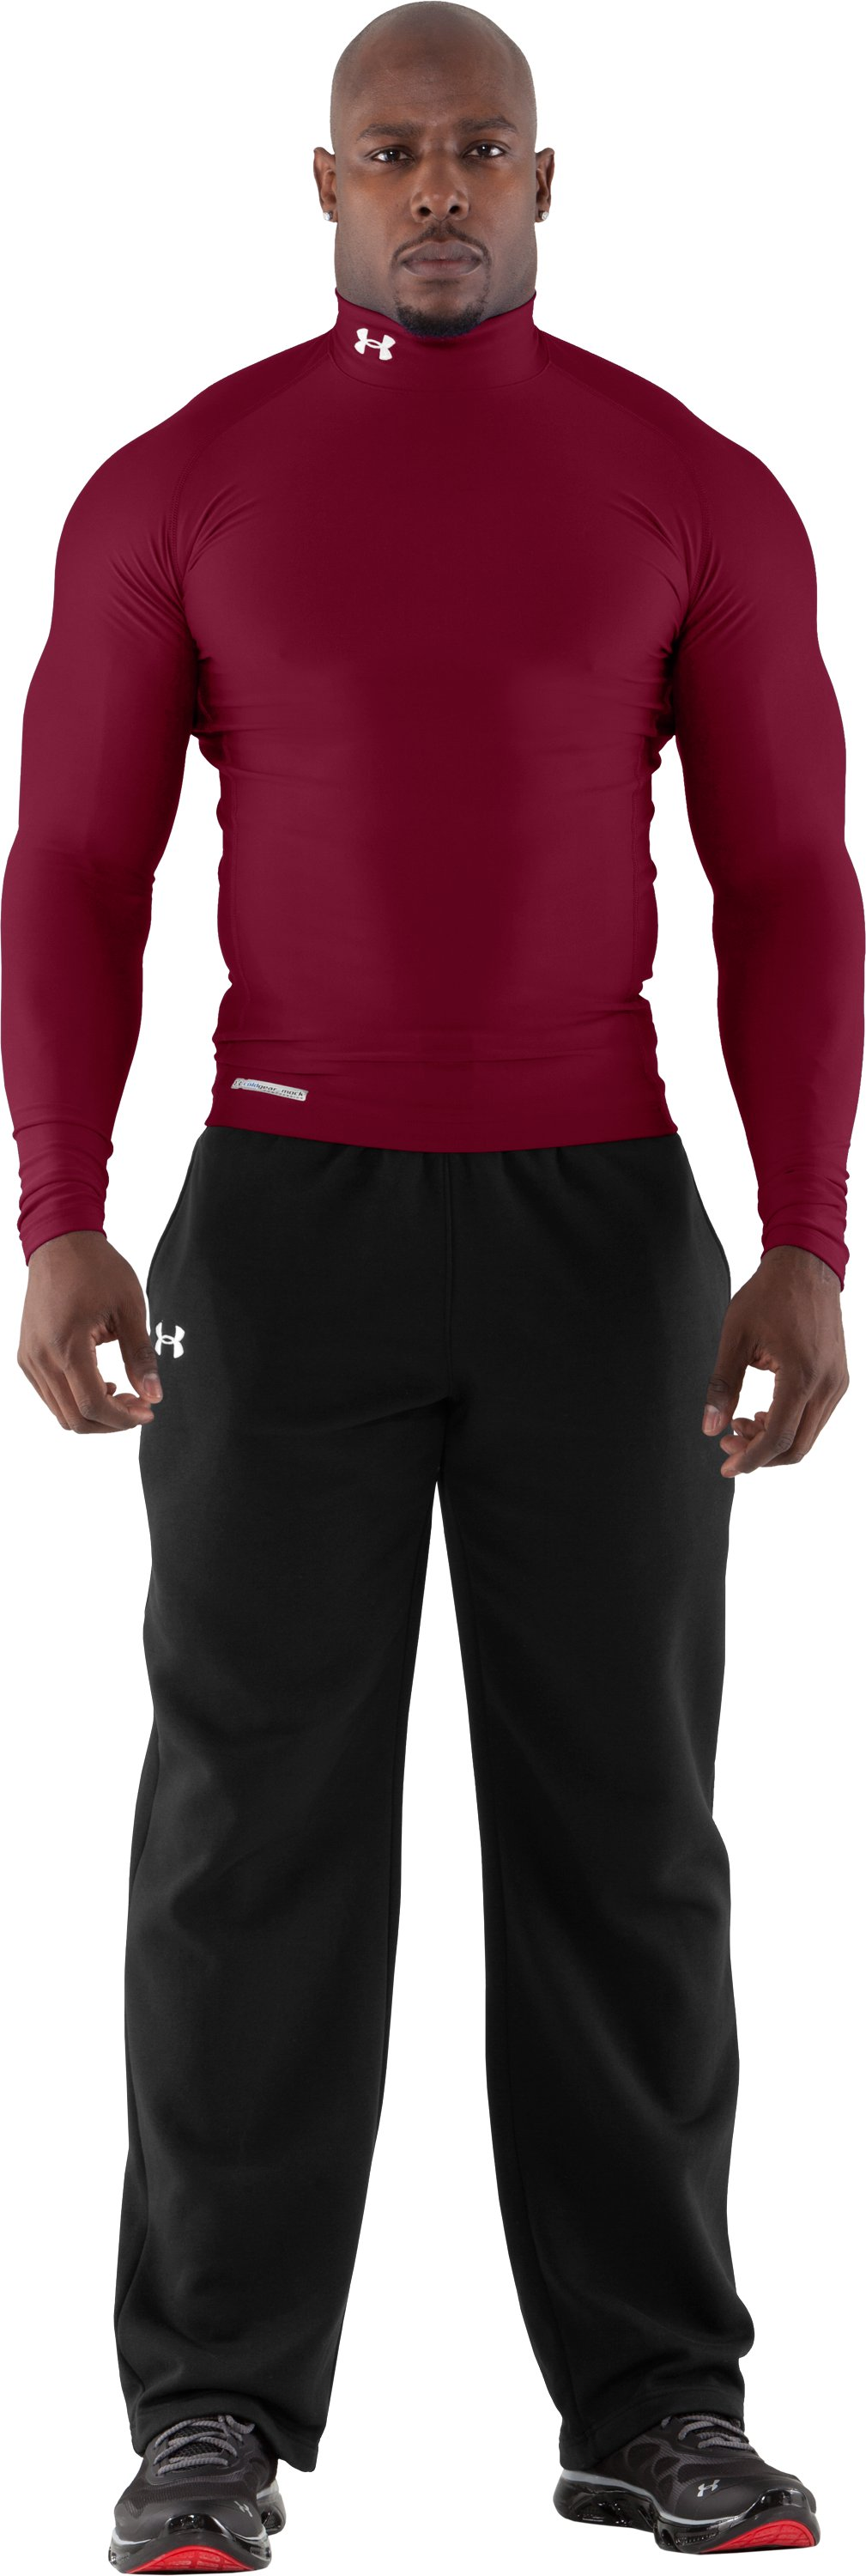 Men's ColdGear® Evo Long Sleeve Compression Mock, Maroon